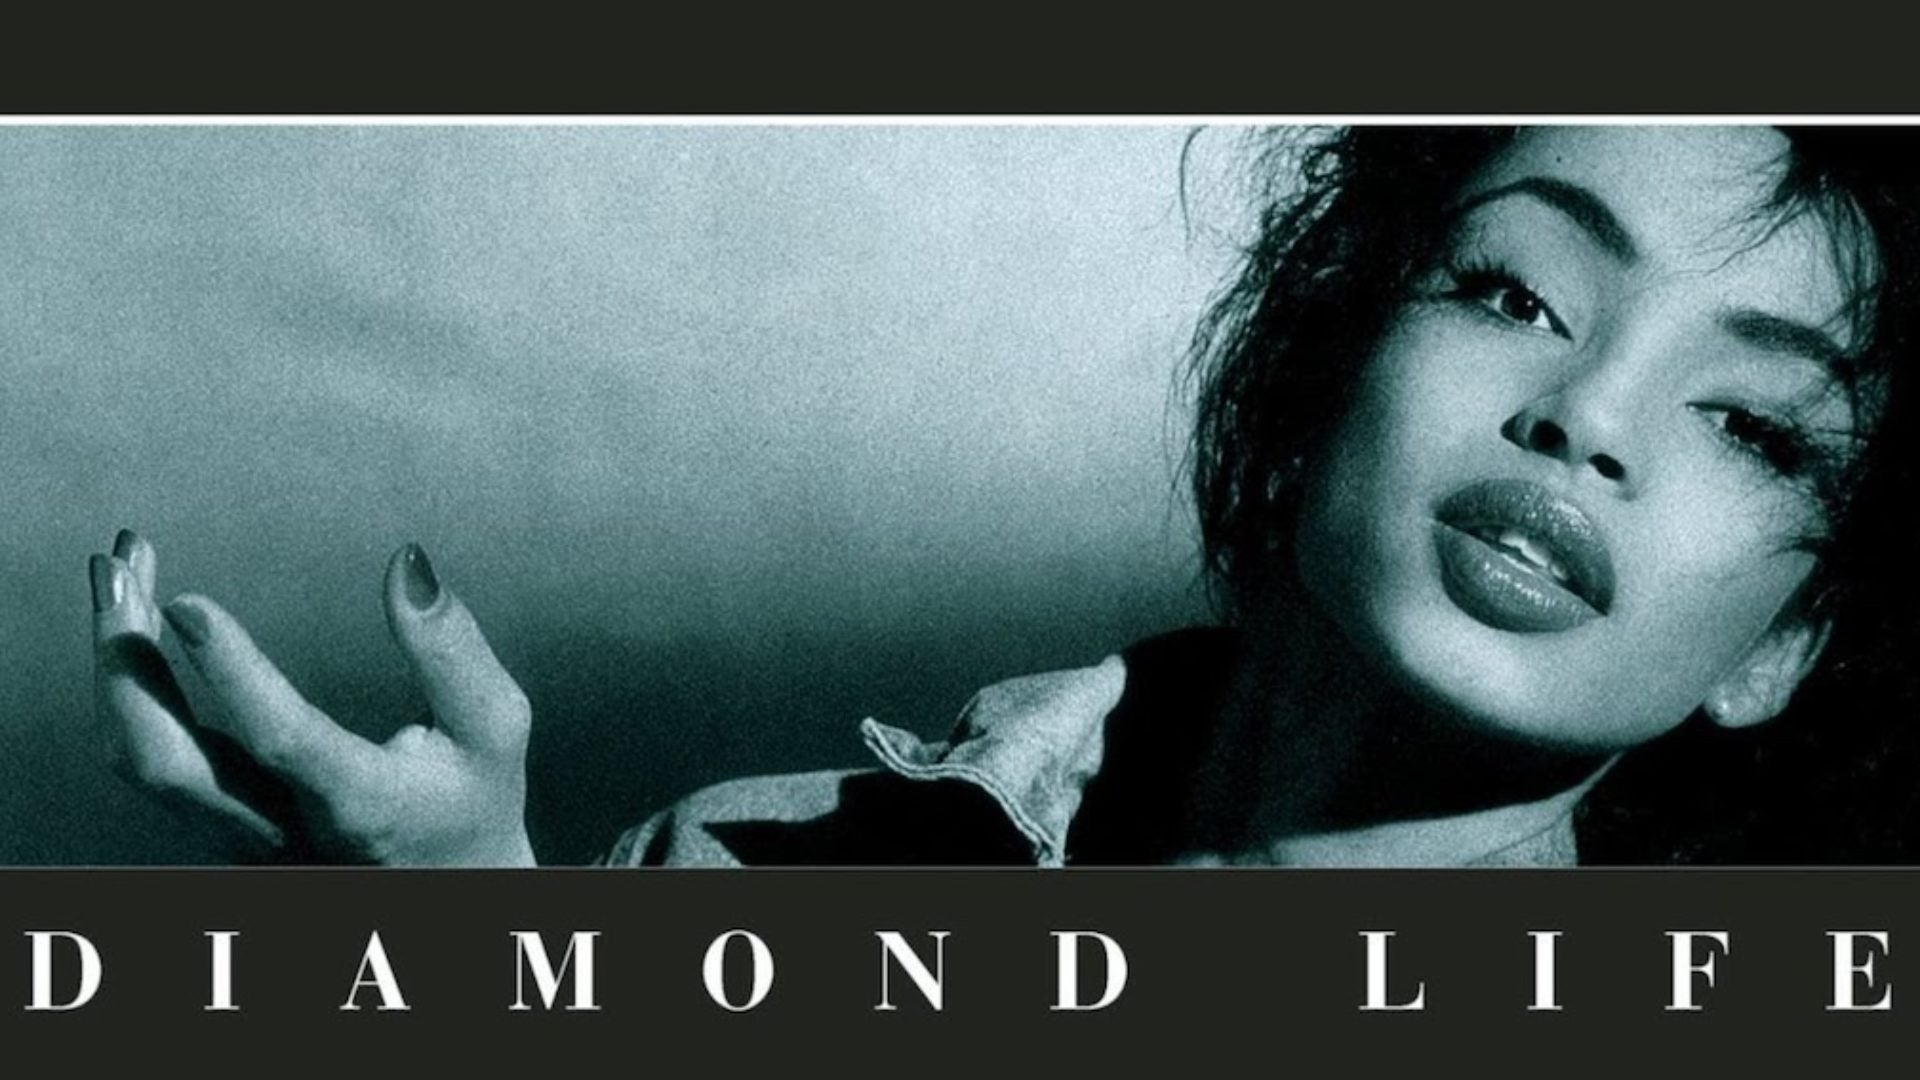 The Best Songs From Sade's Debut Album 'Diamond Life'